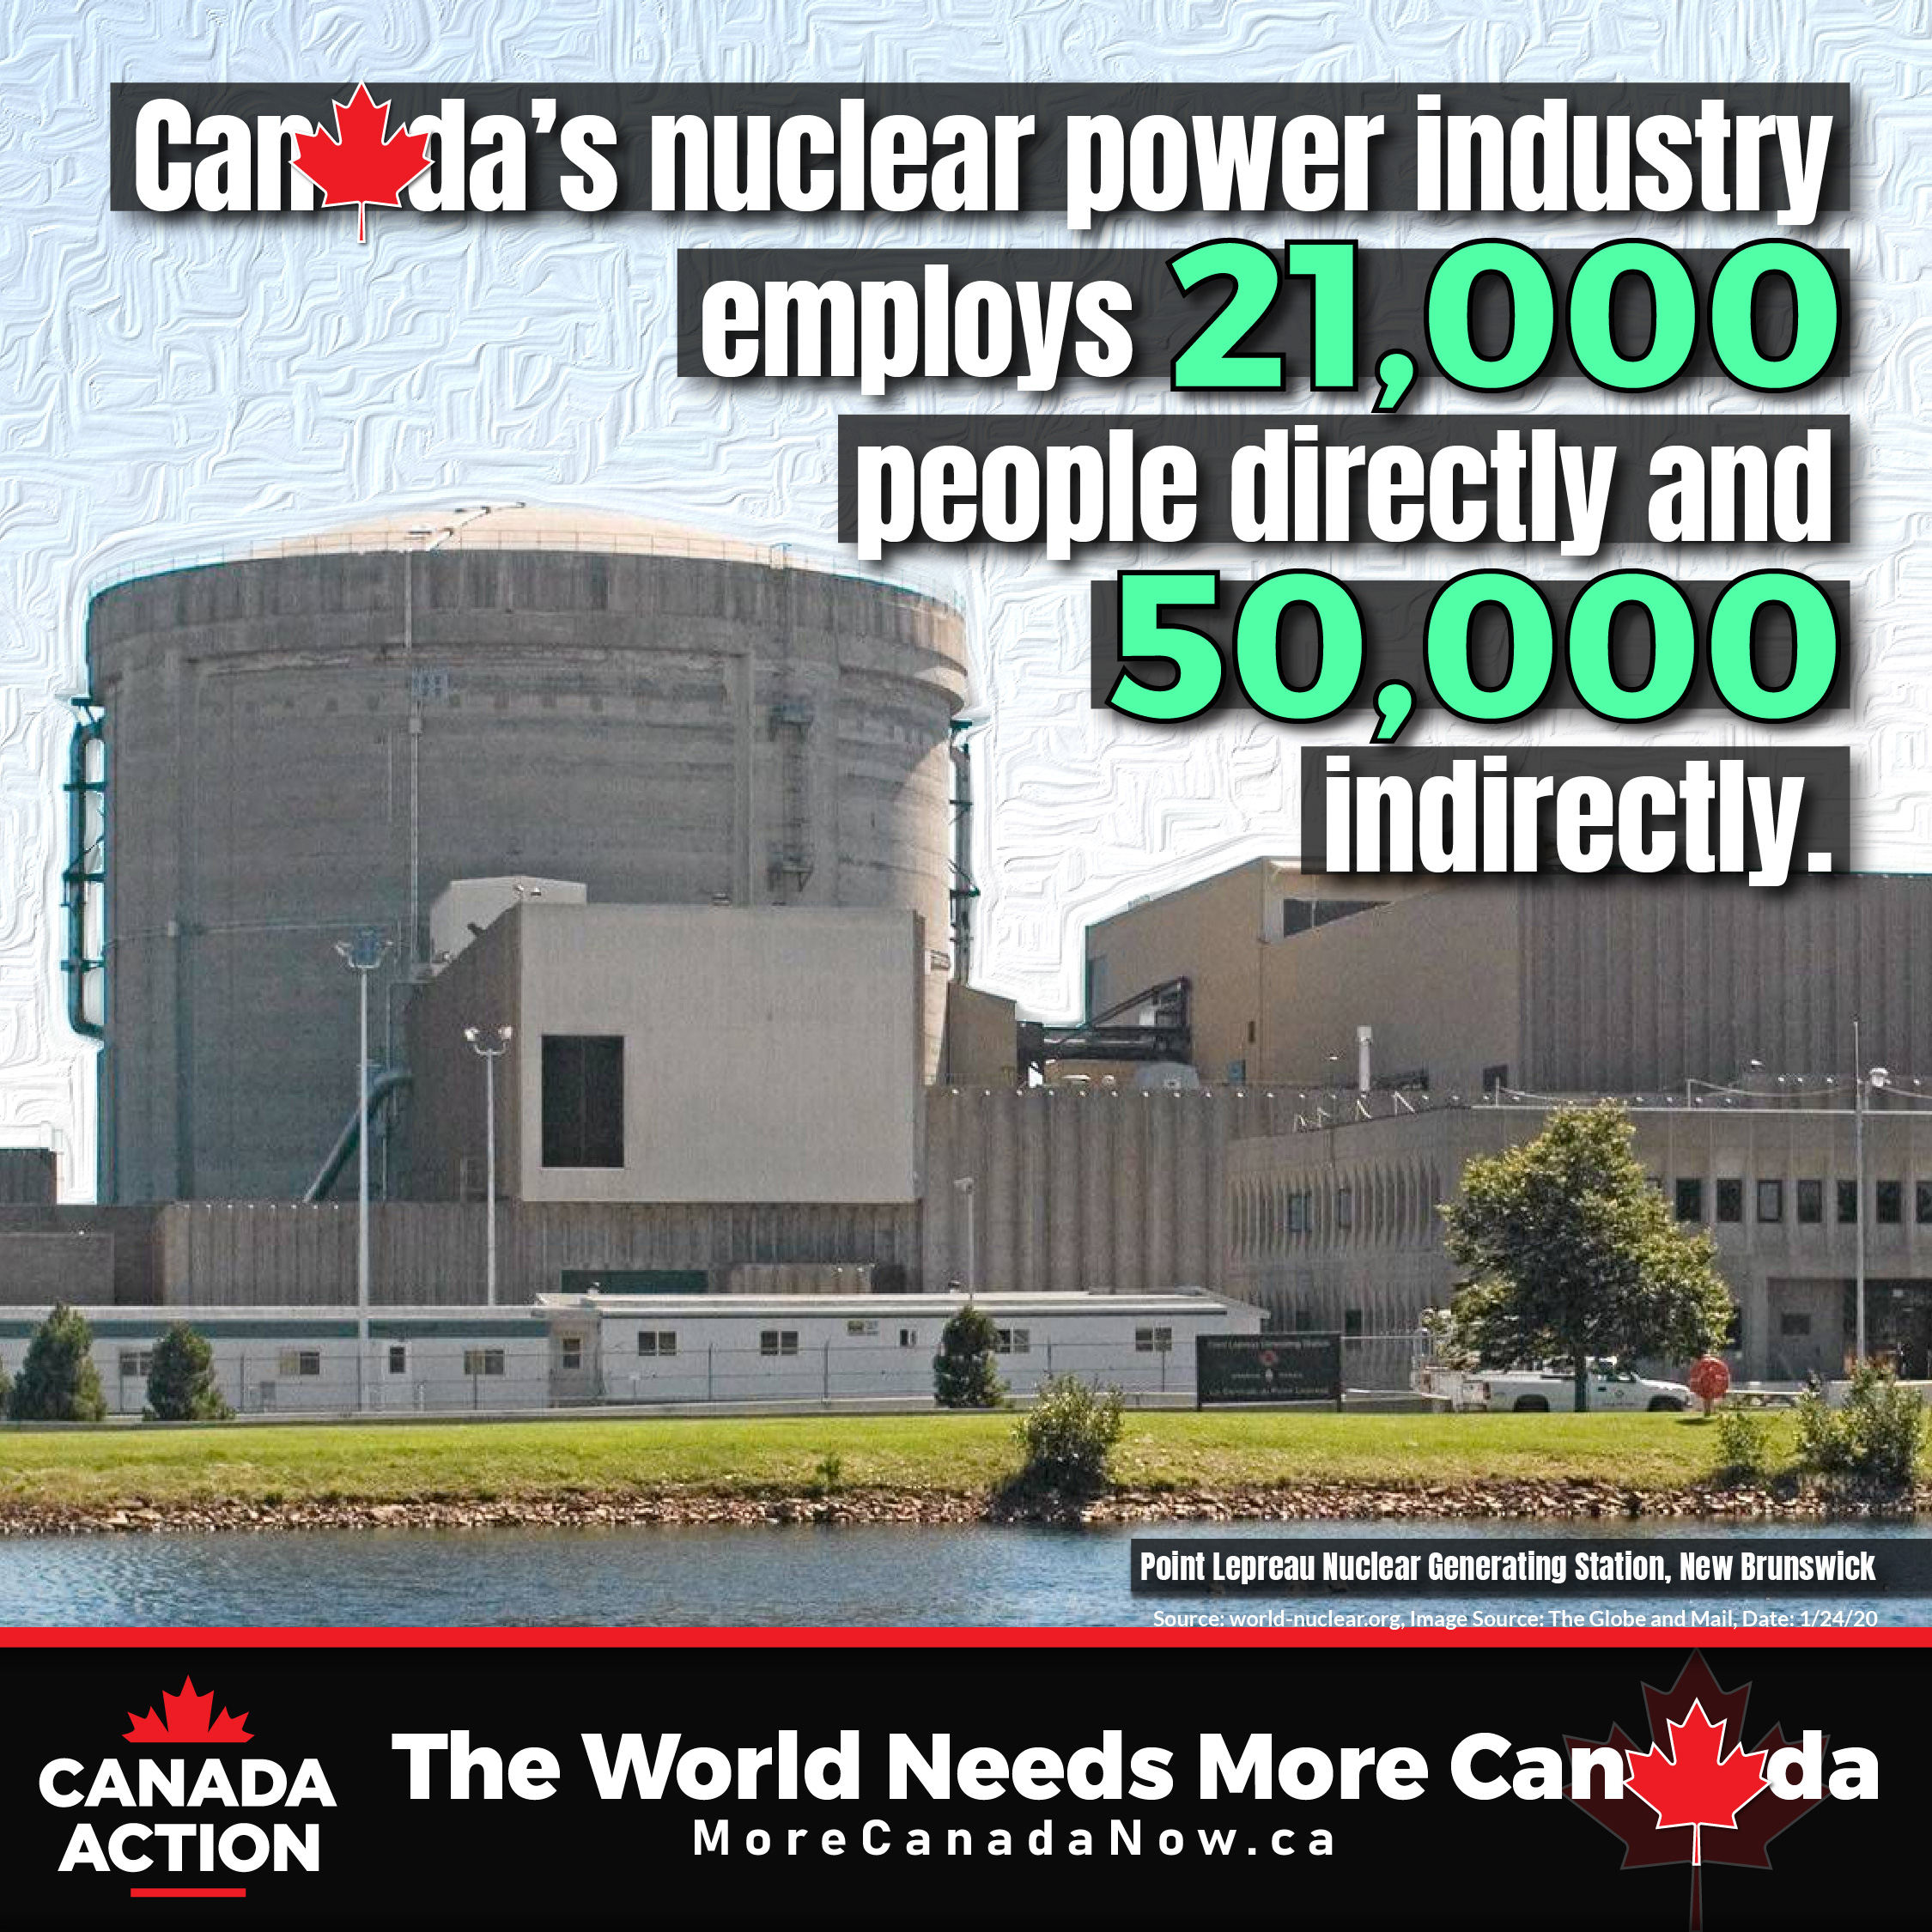 nuclear energy in Canada economic benefits